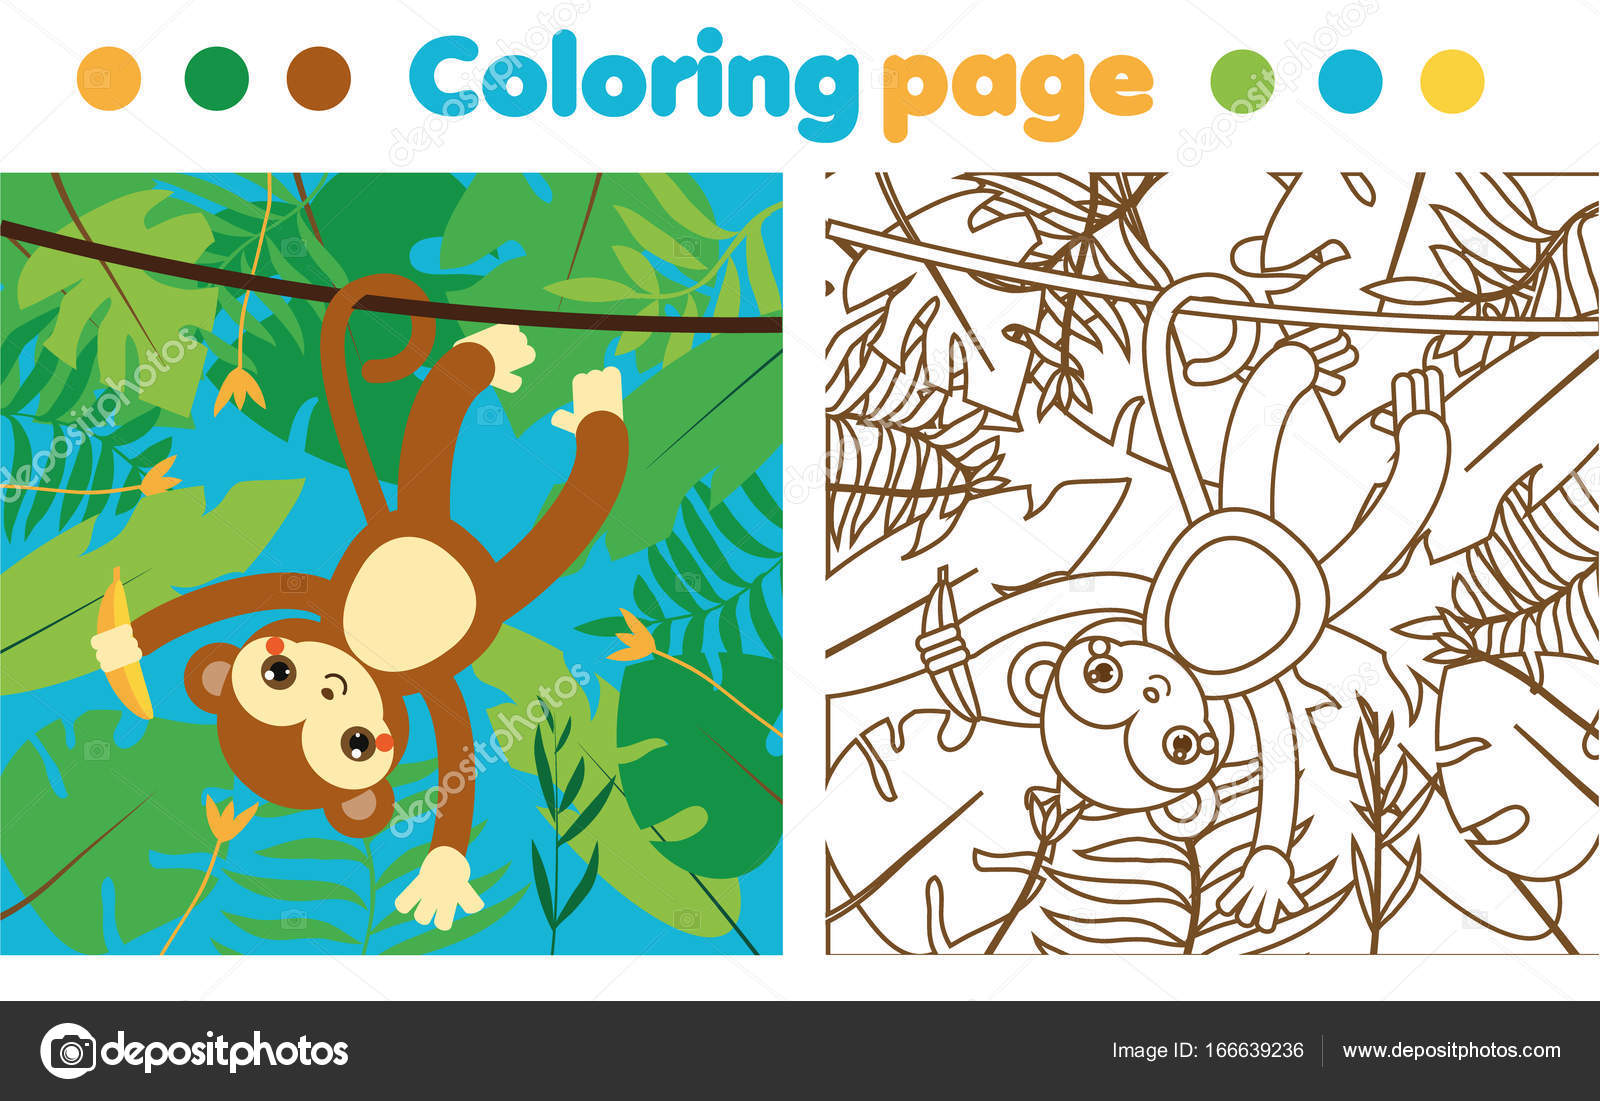 Coloring Page Children Monkey Jungle Drawing Kids Activity Printable ...